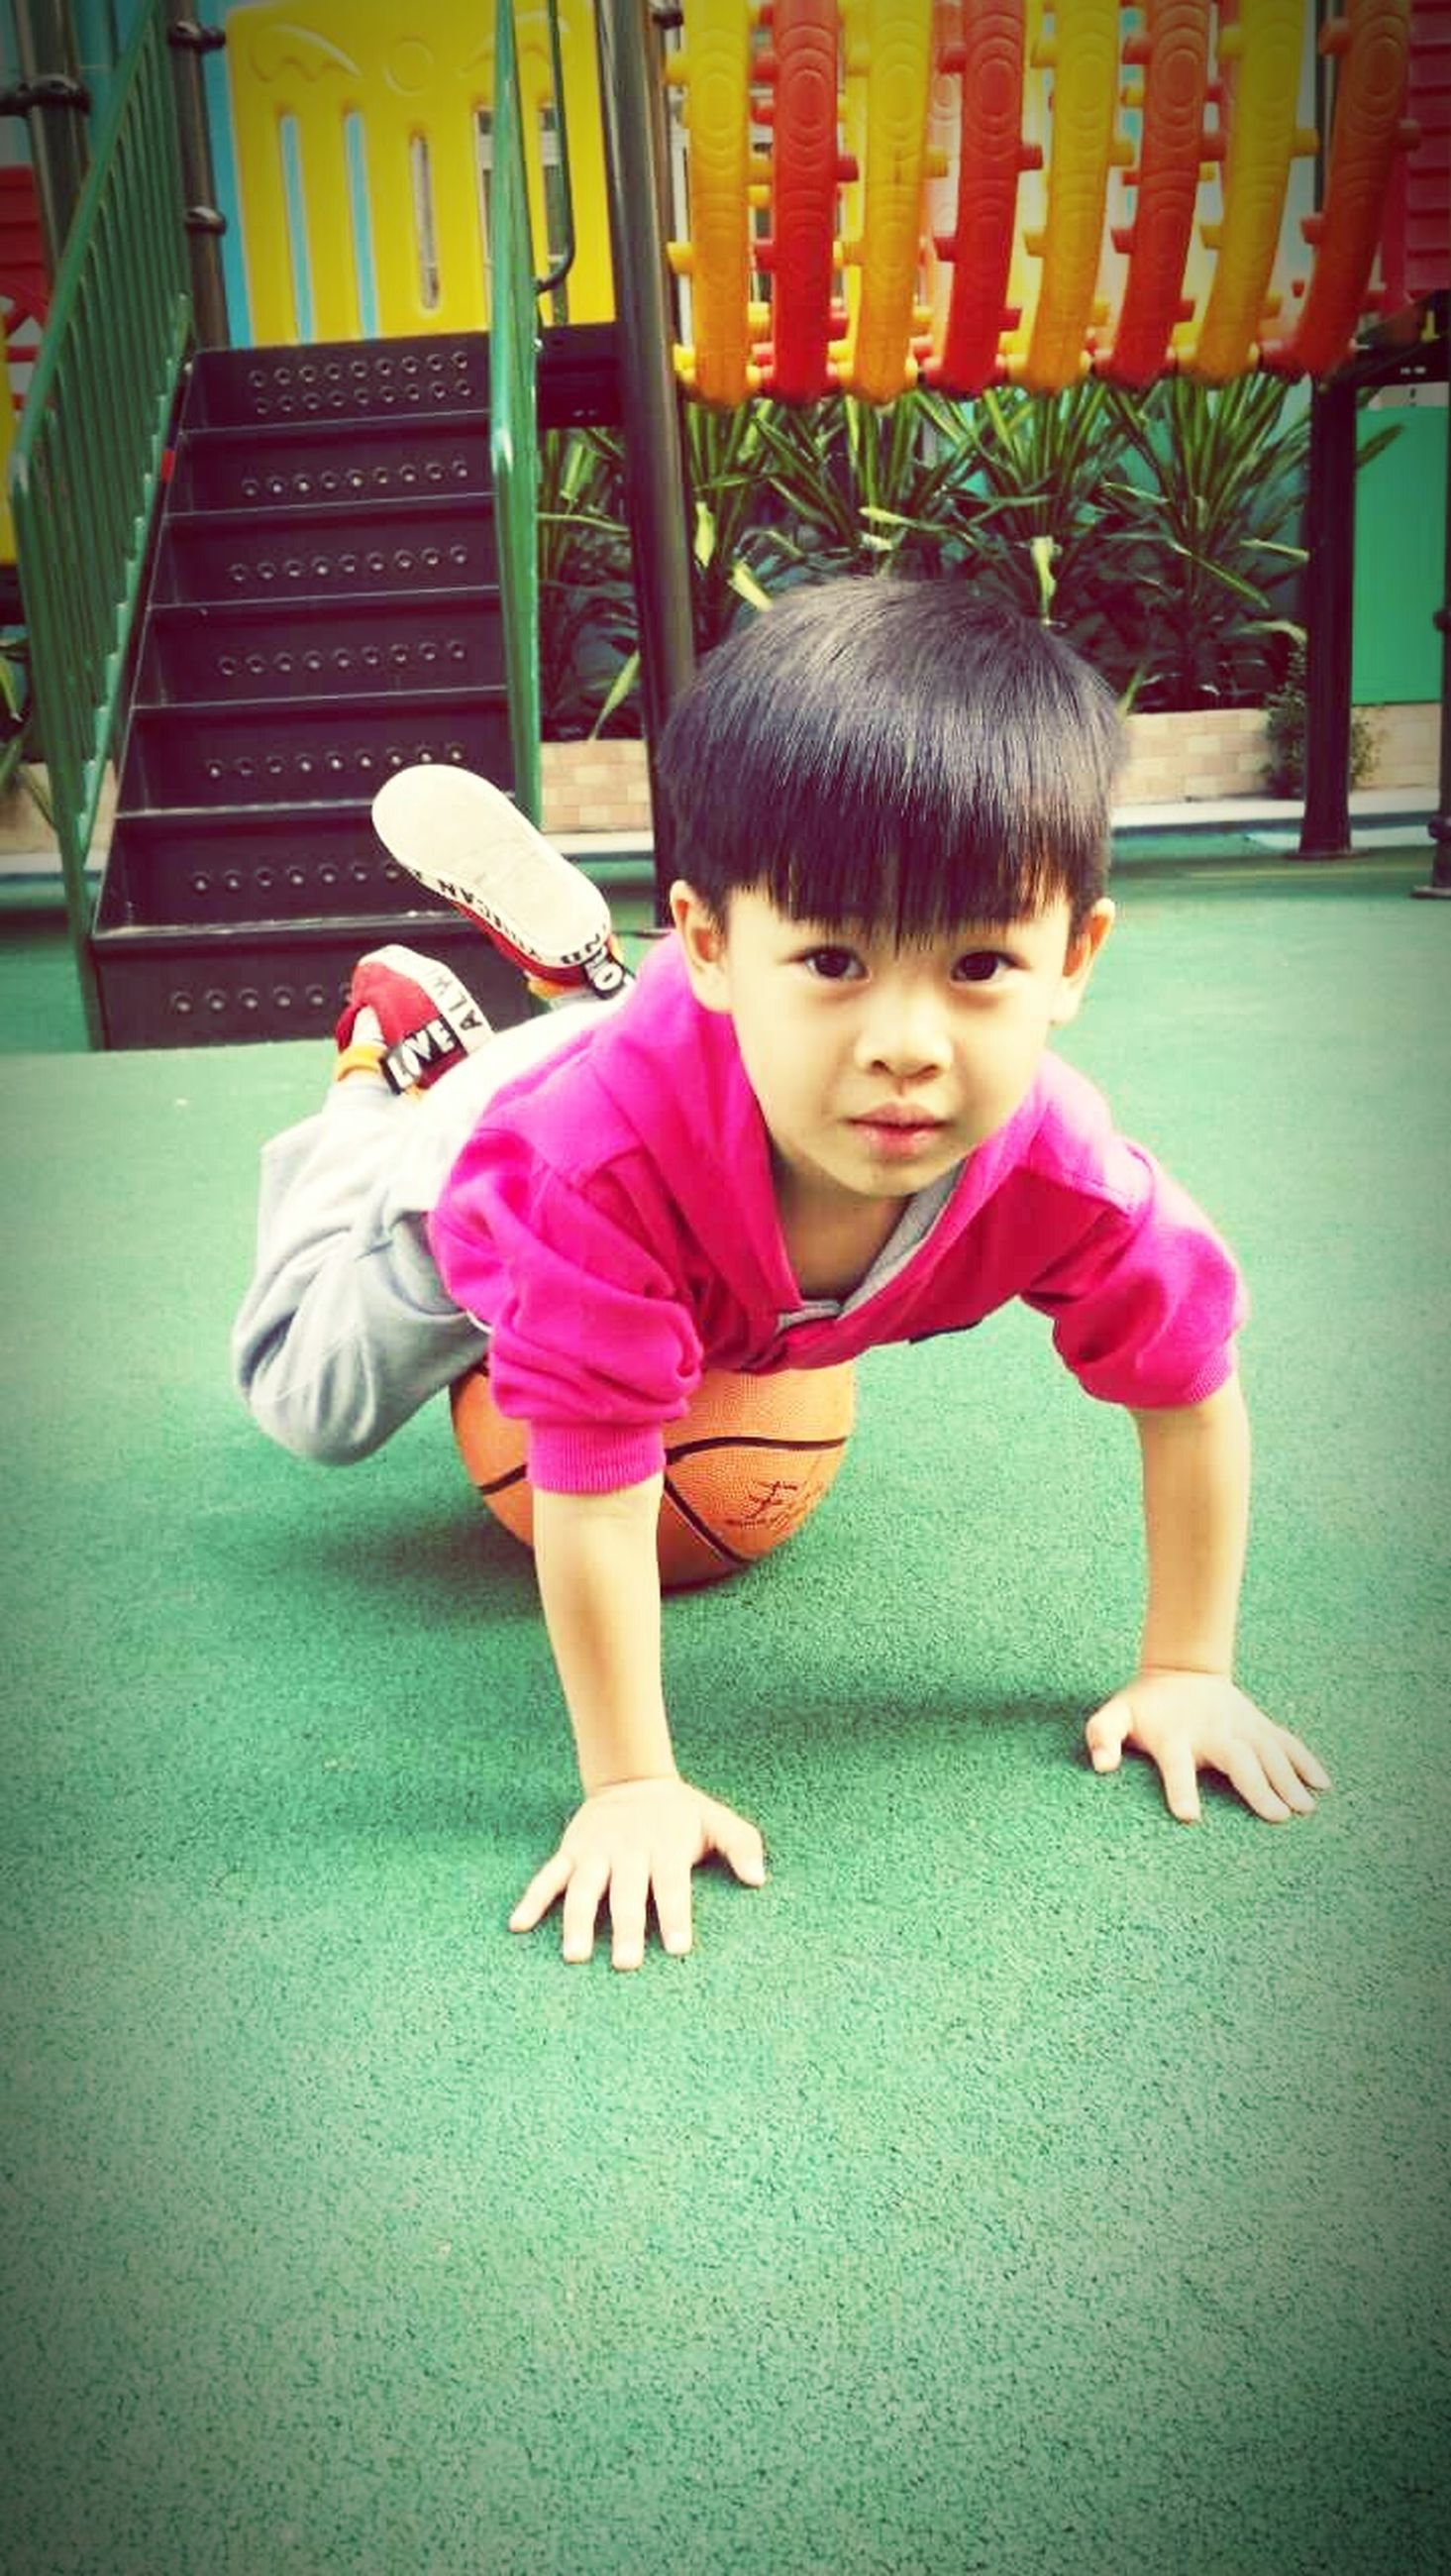 childhood, elementary age, girls, full length, innocence, person, cute, boys, lifestyles, casual clothing, leisure activity, playing, preschool age, playful, togetherness, fun, playground, family